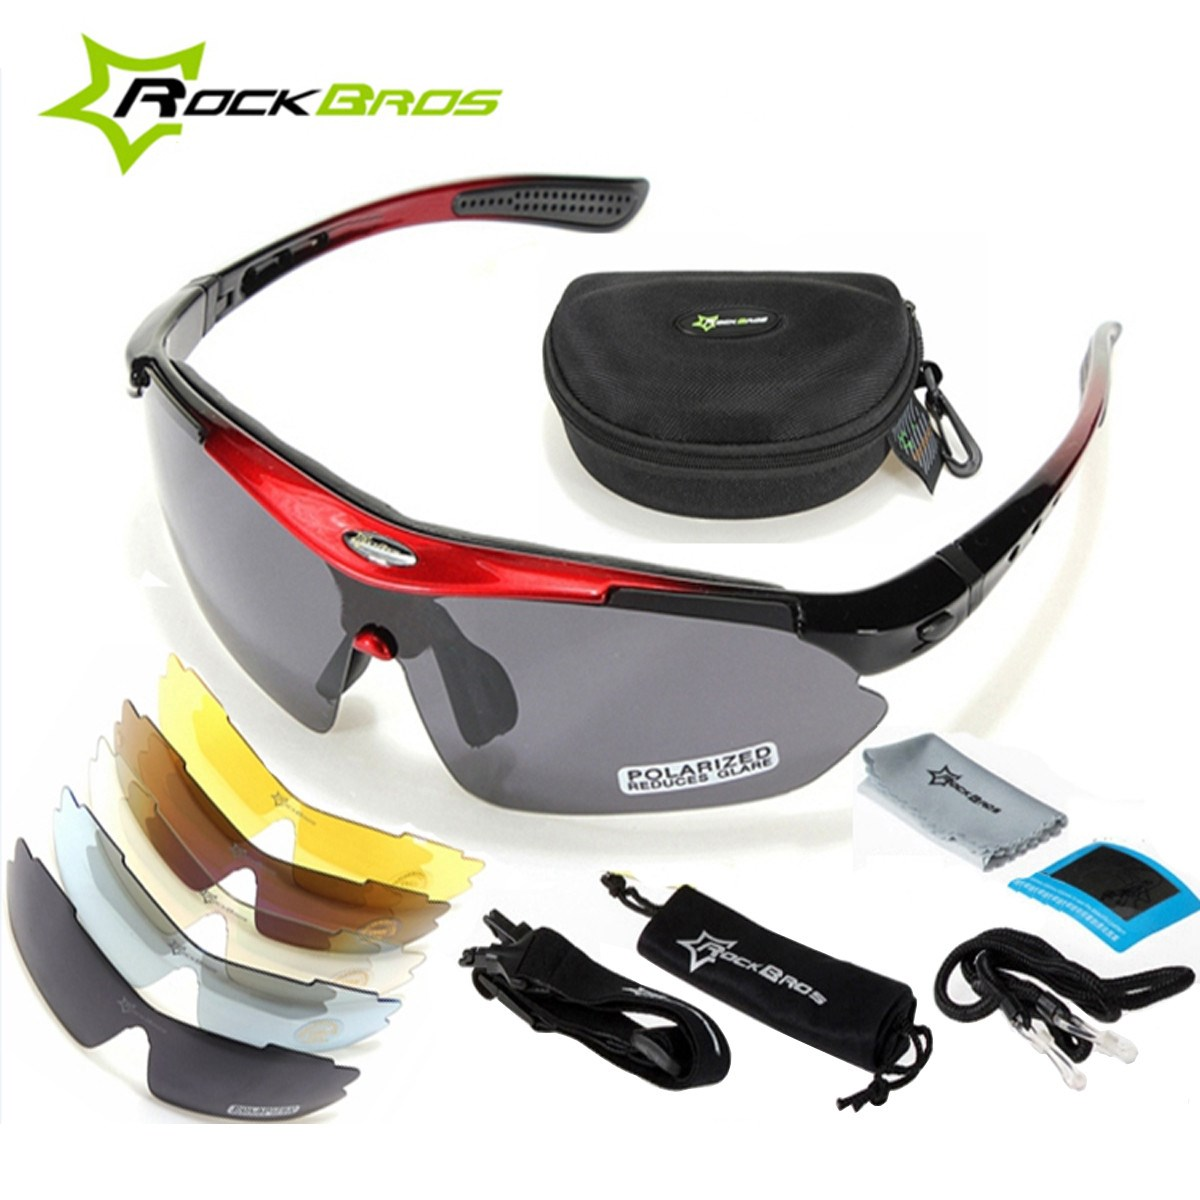 ROCKBROS Polarized Cycling Bike Bicycle Sunglasses Outdoor Sports Glasses Goggles Eyewear 5 Lens 4 Colors oversize unisex fashion sunglasses polarized retro hipster steampunk goggles mirror coating sunglass polar superstar eyewear